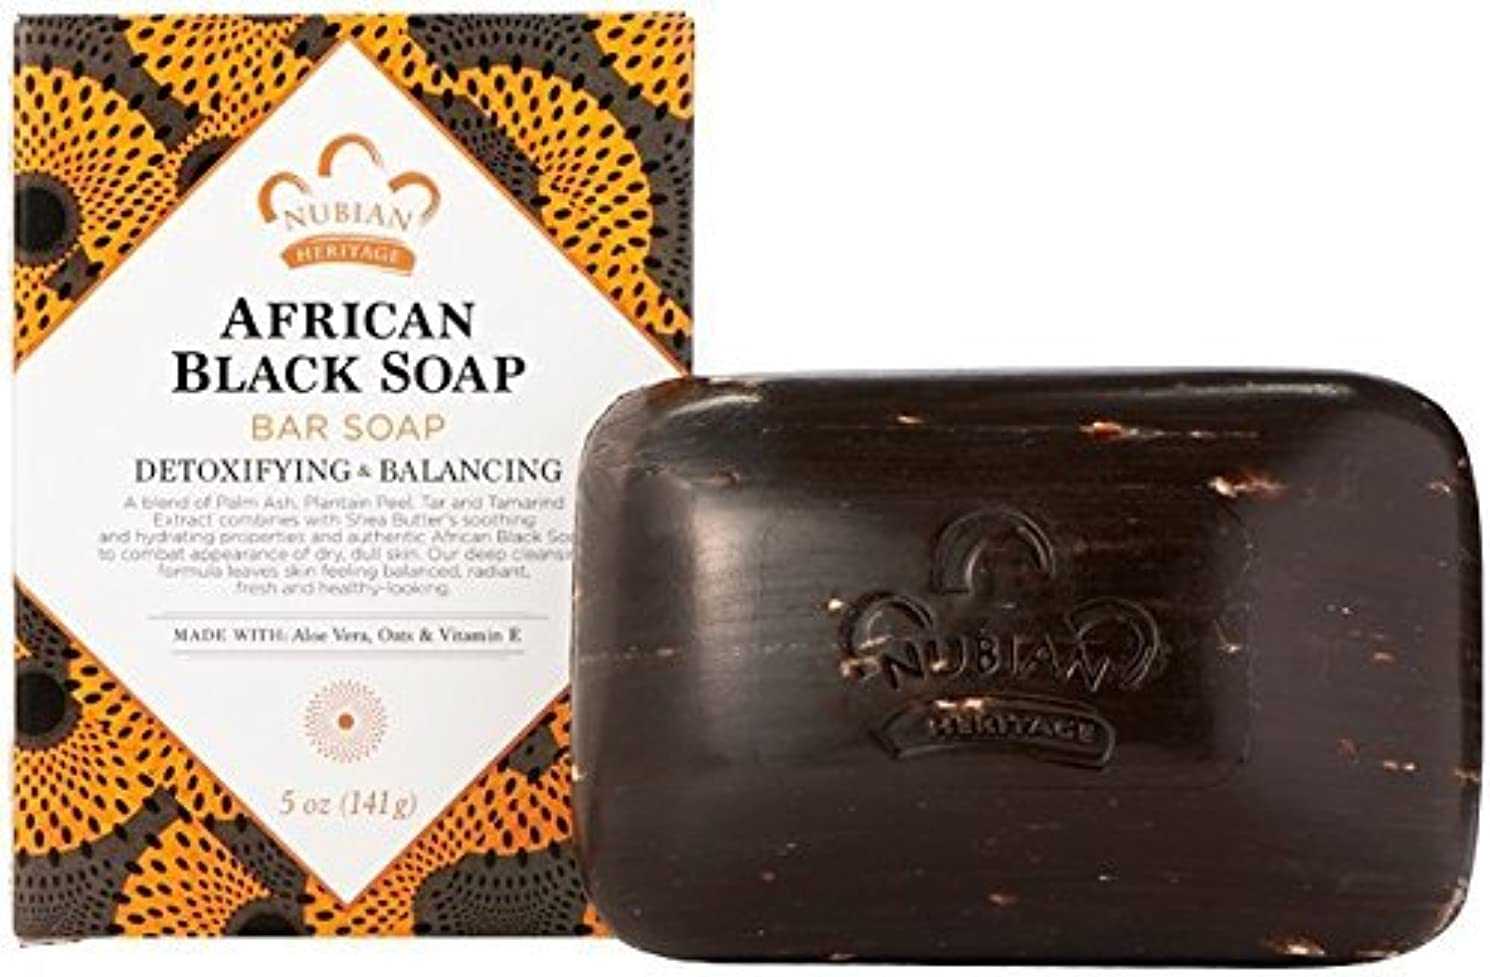 干ばつ抜粋シビックBar Soap, African Blk with Al, 5 oz,pack of 4 by Nubian Heritage [並行輸入品]